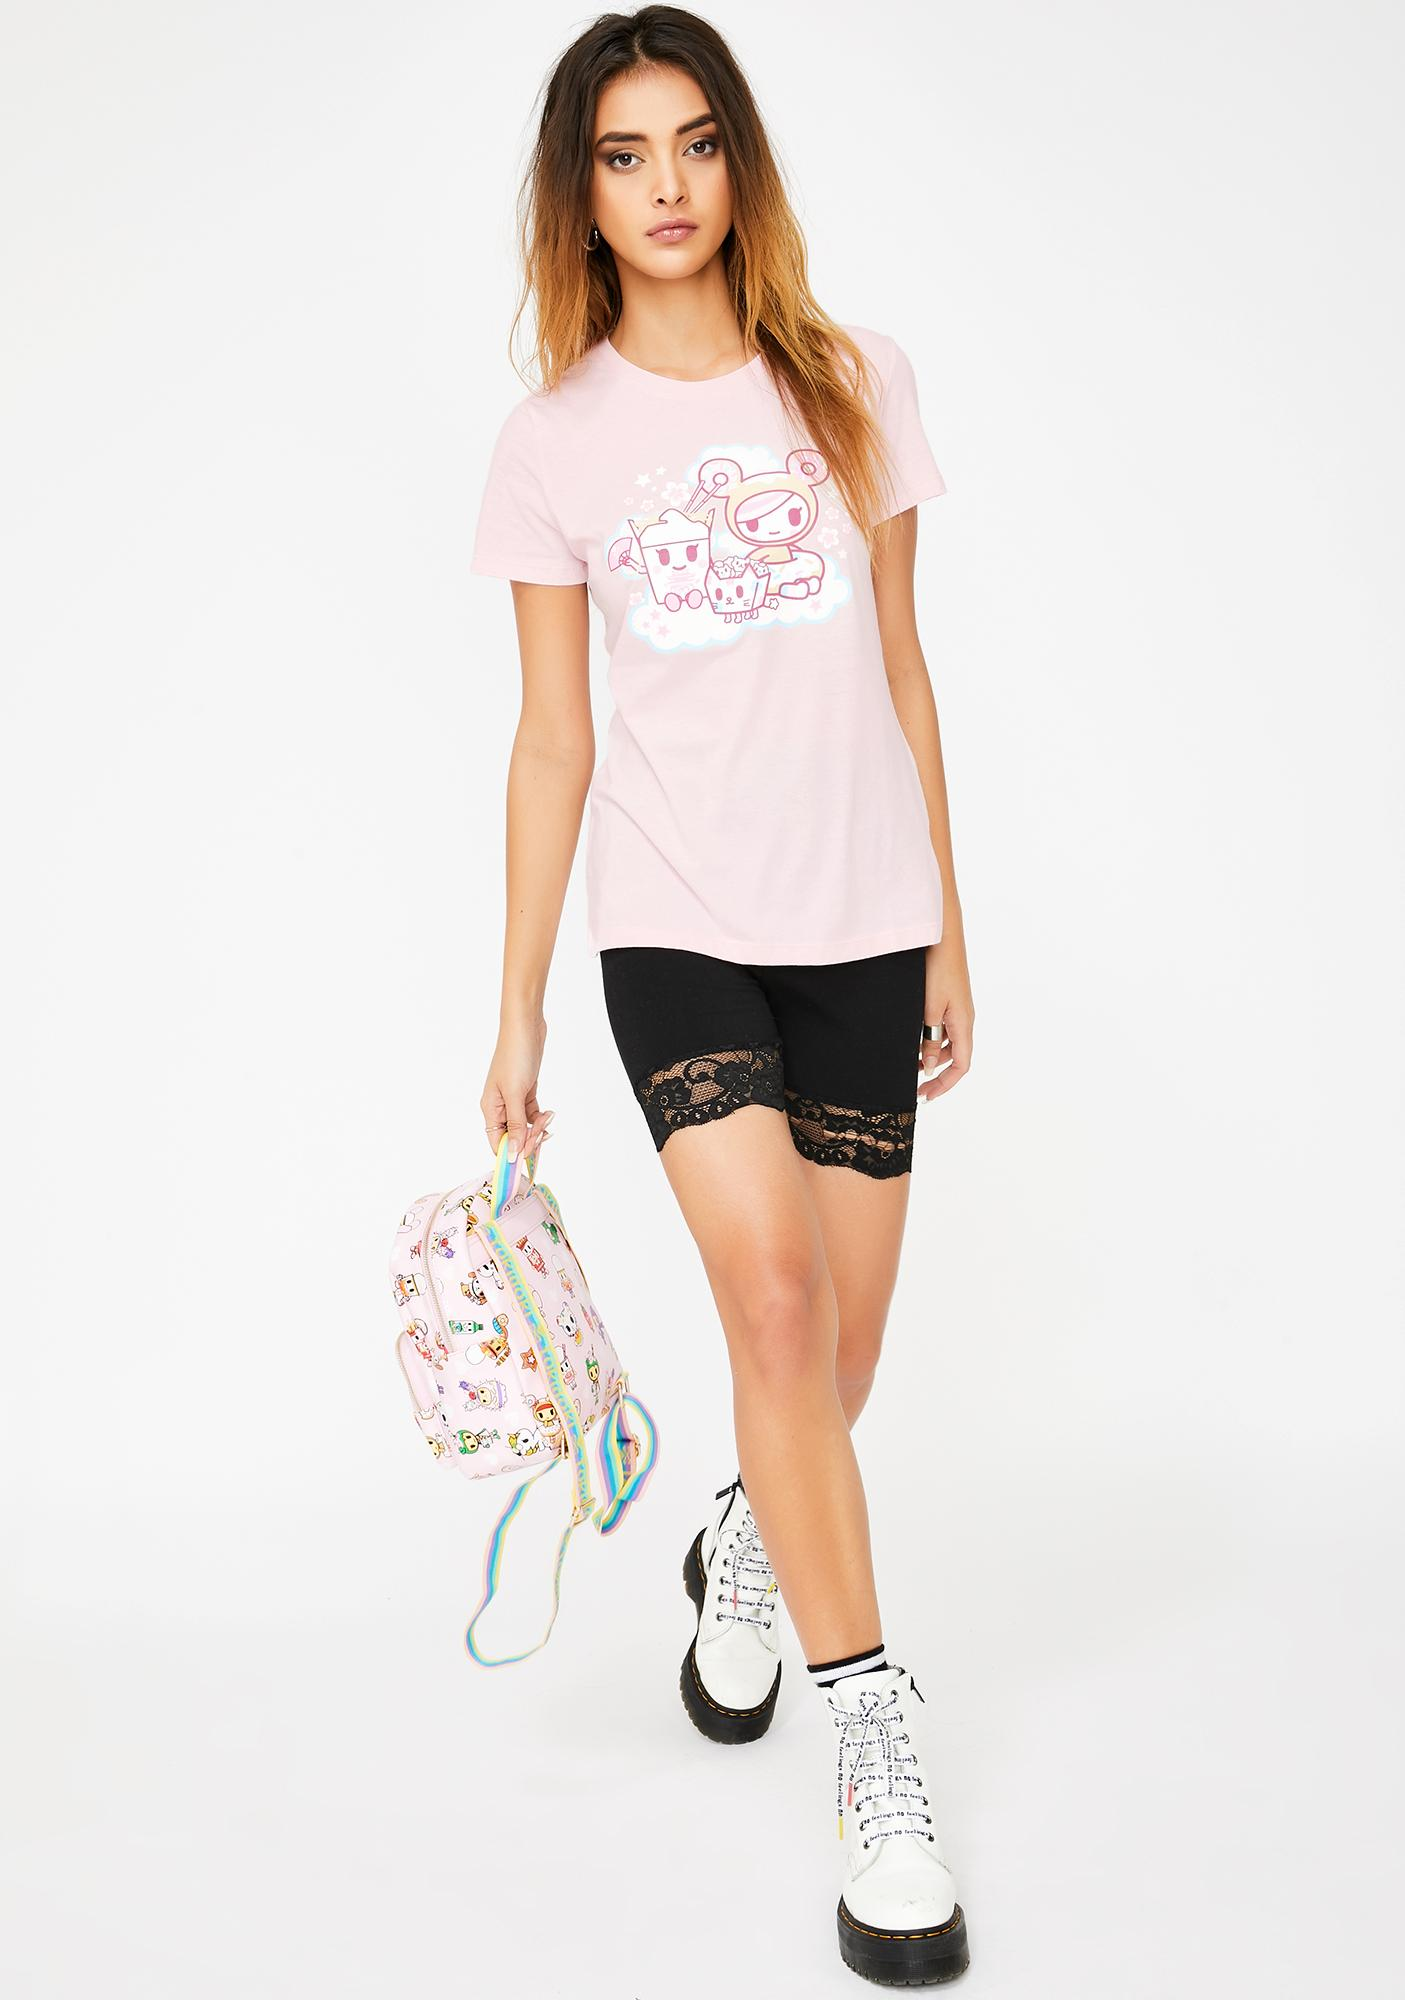 Tokidoki Foodie Besties Graphic Tee